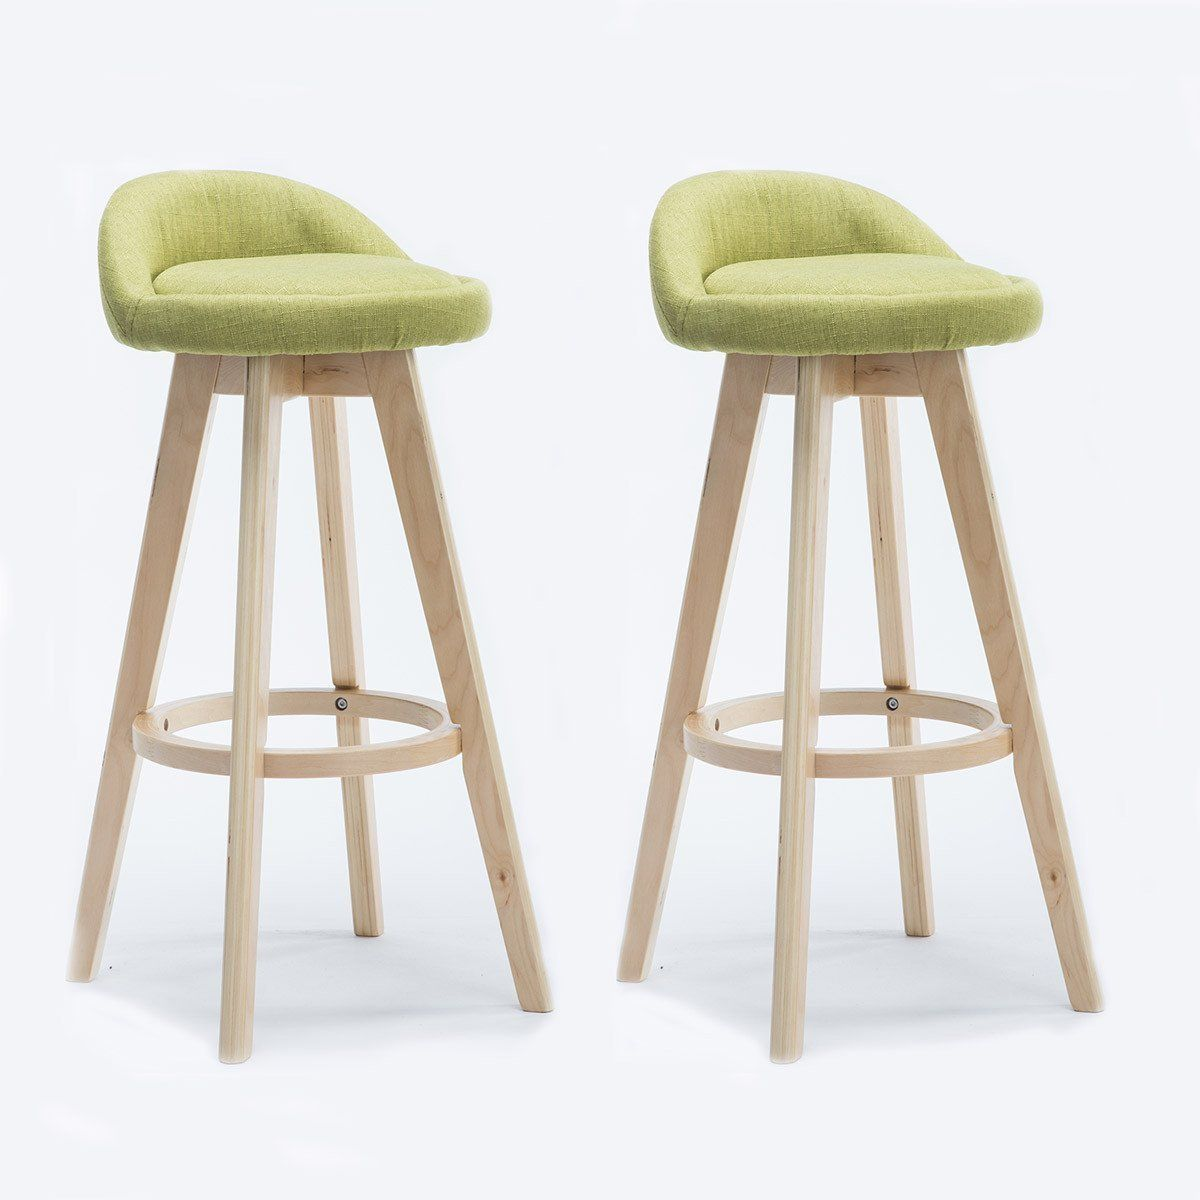 Awesome Modern Bar Stool Chair